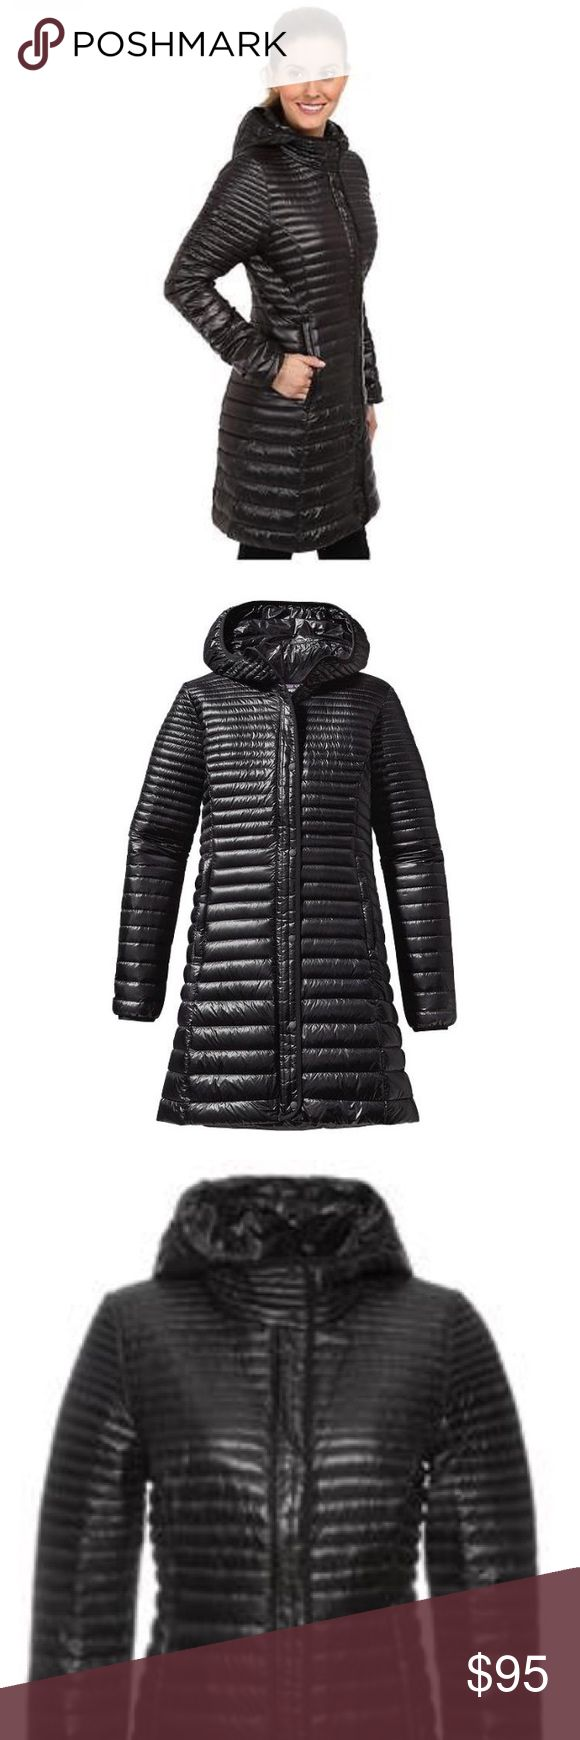 Patagonia Fiona Down Parka 🌚 SALE! Authentic Women's Full Zip Long Down Parka Jacket, Black, US Size M, NEW WITH TAGS Patagonia Jackets & Coats